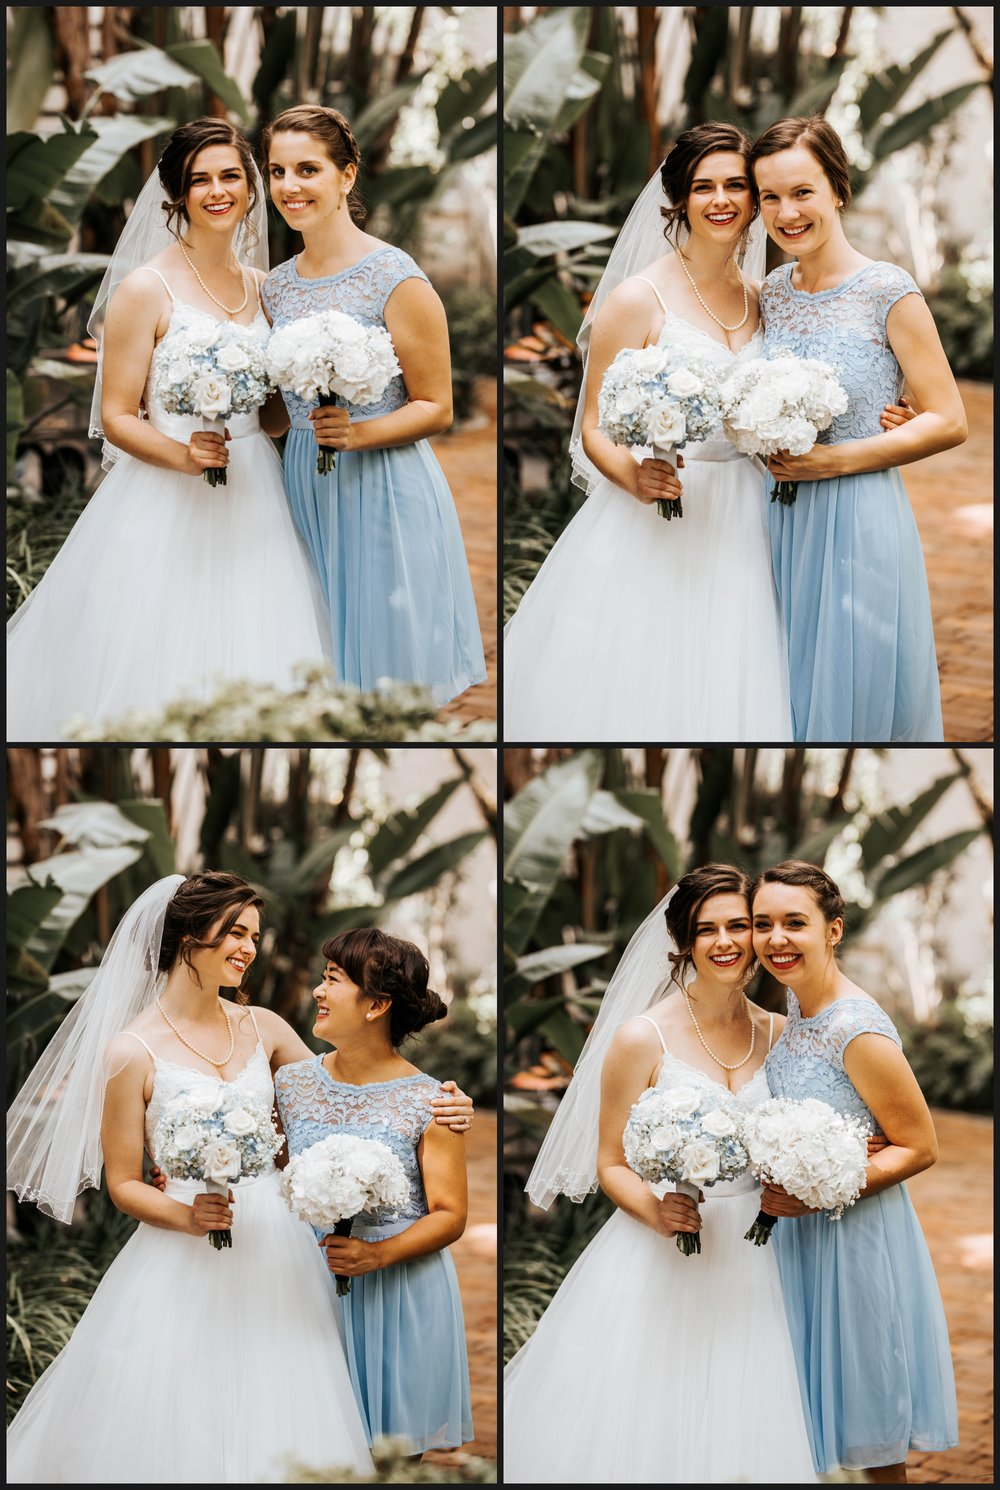 OrlandoWeddingPhotographer_0006.jpg